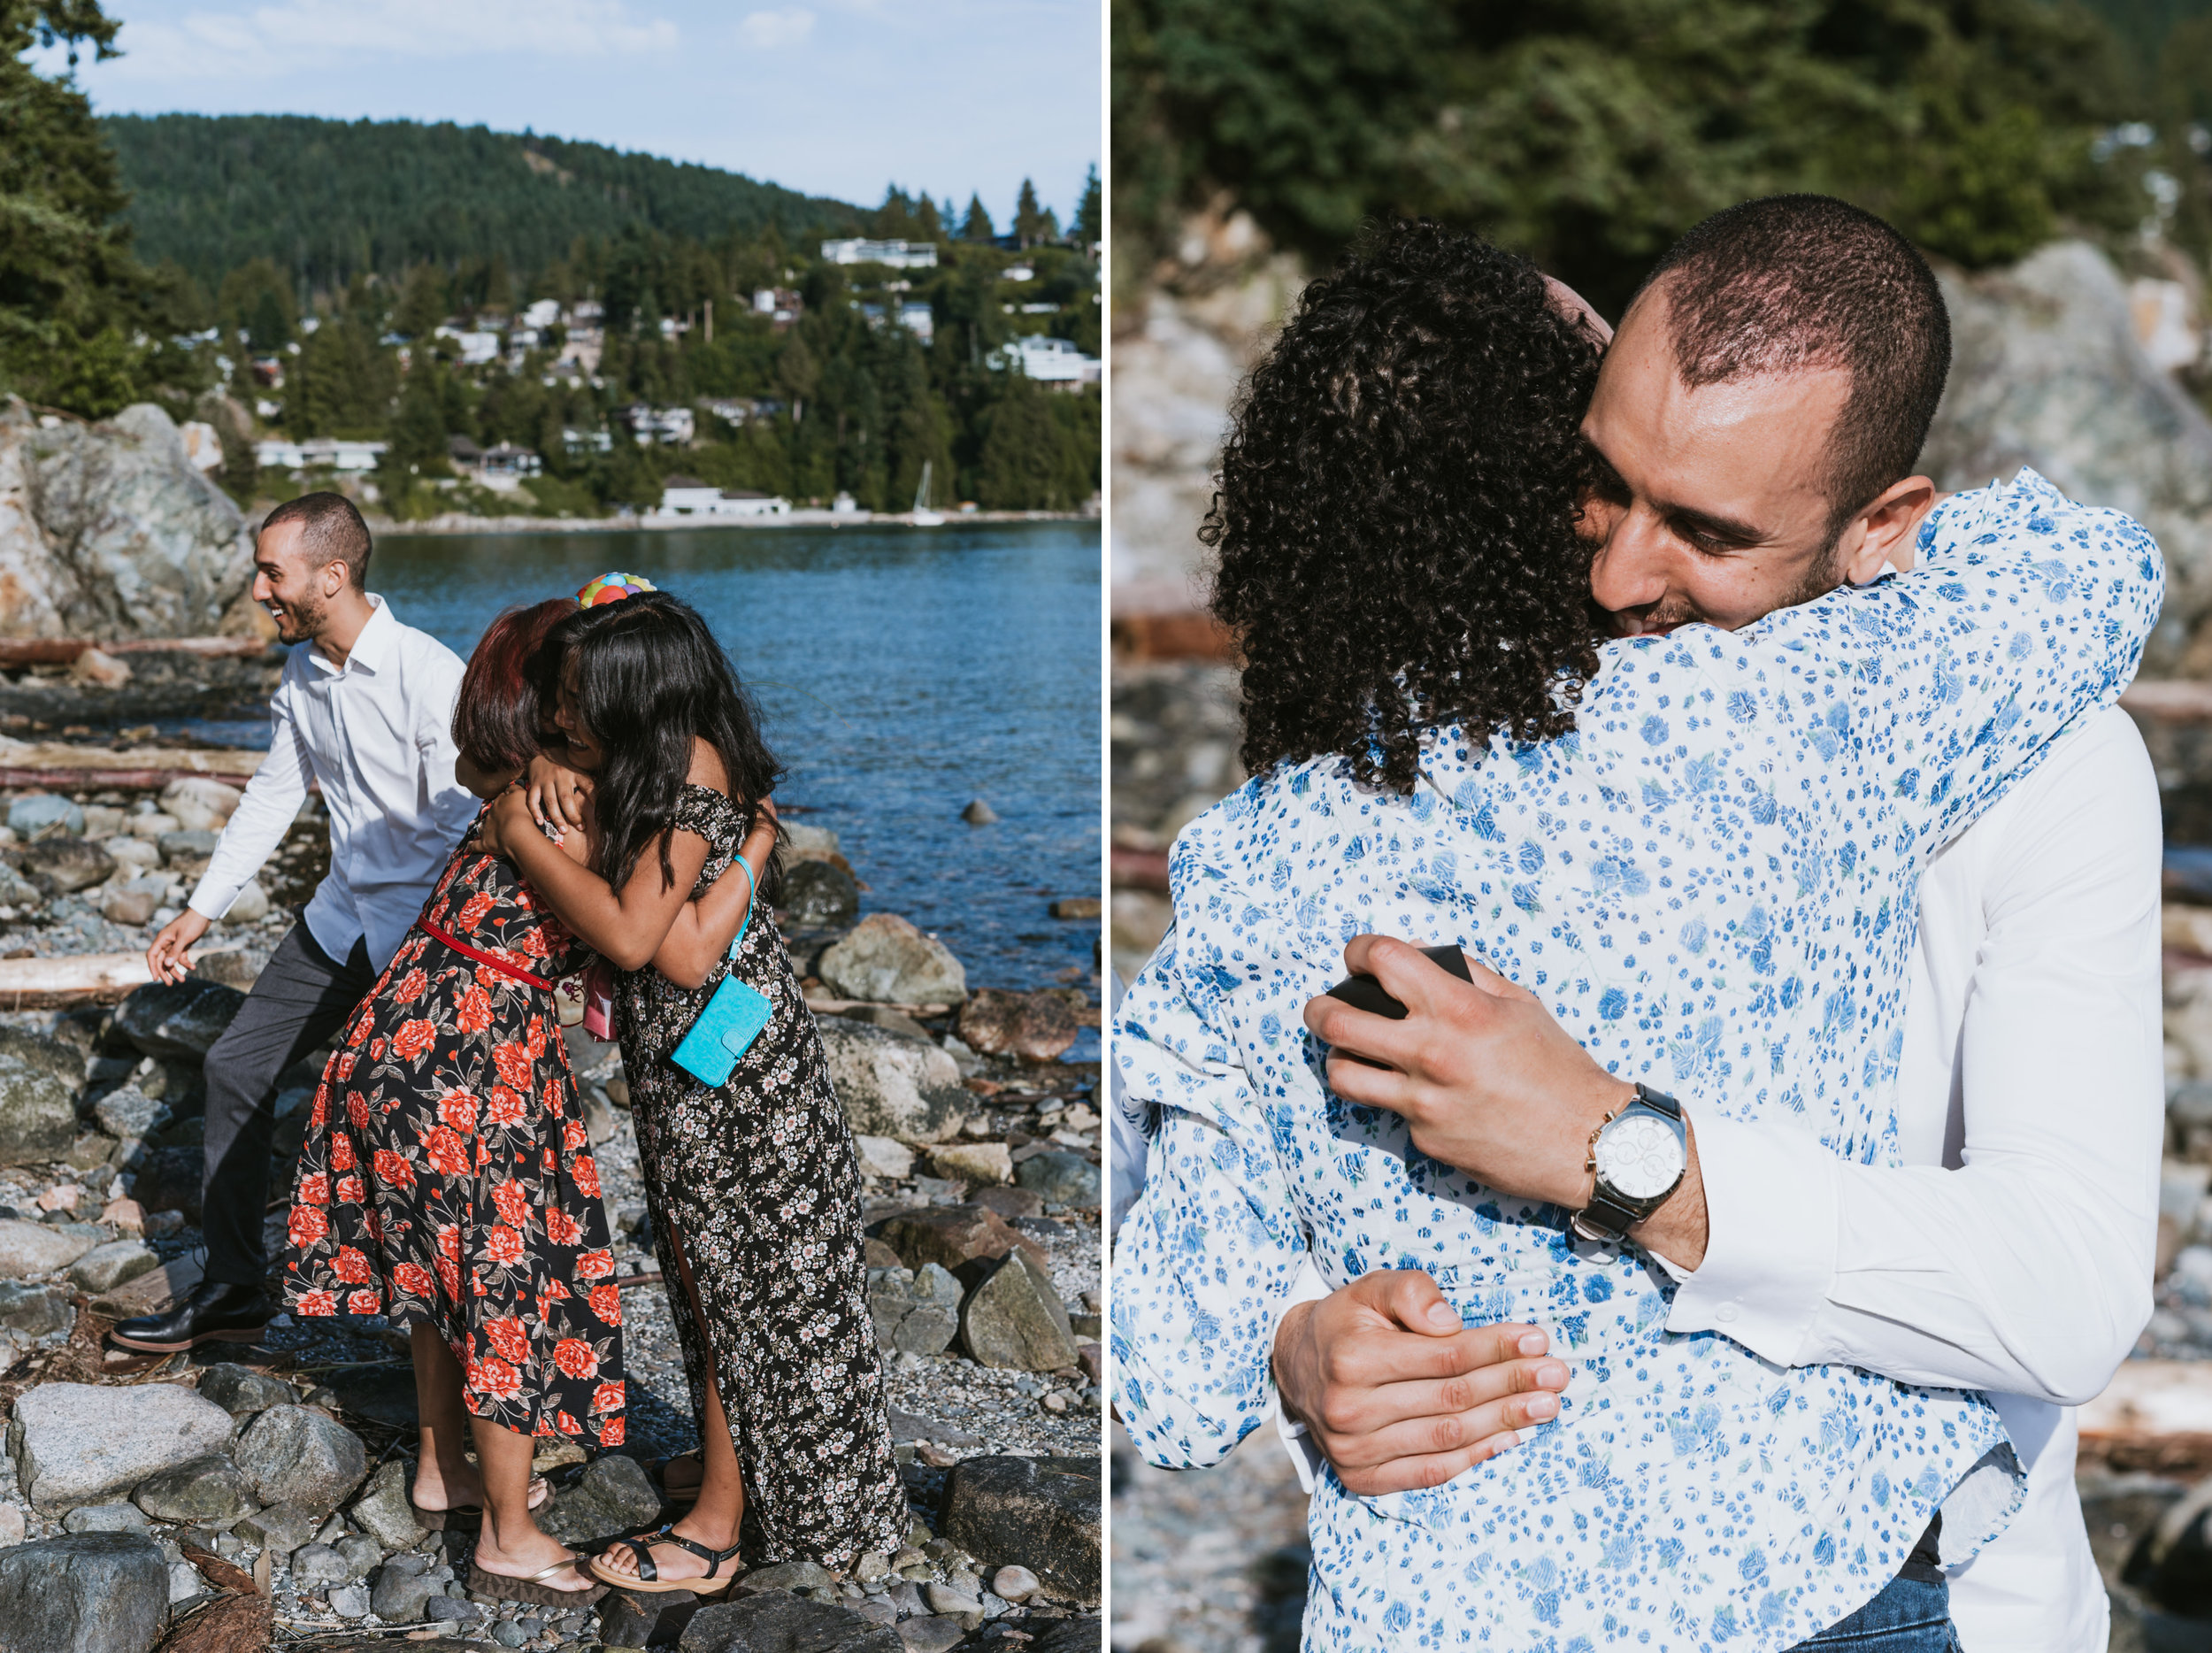 oliver-rabanes-vancouver-surrey-whytecliff-park-proposal-engagement-photography-21.jpg